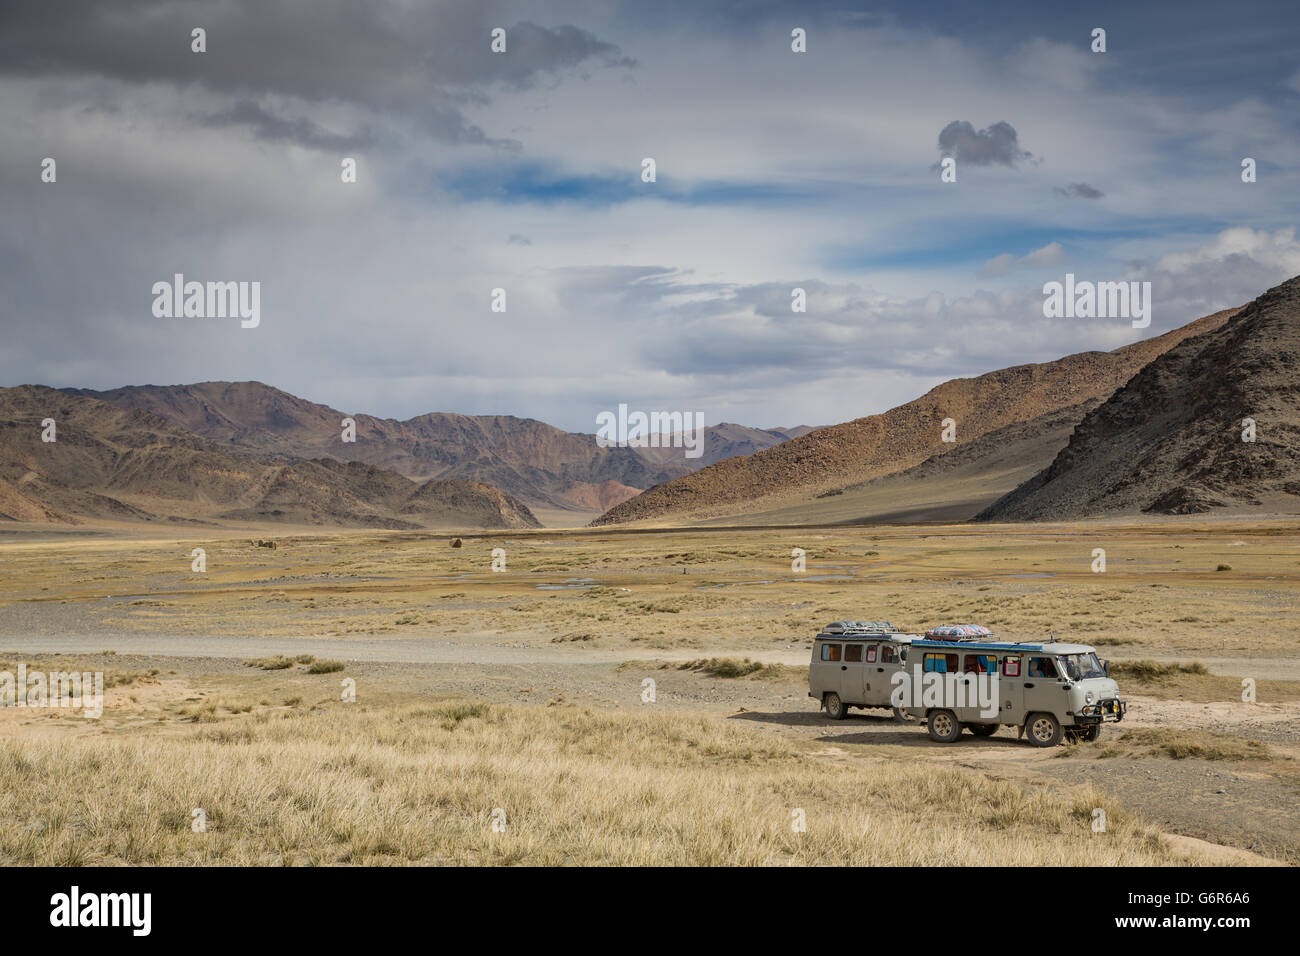 two cars next to the highway to west in western mongoliea - Stock Image